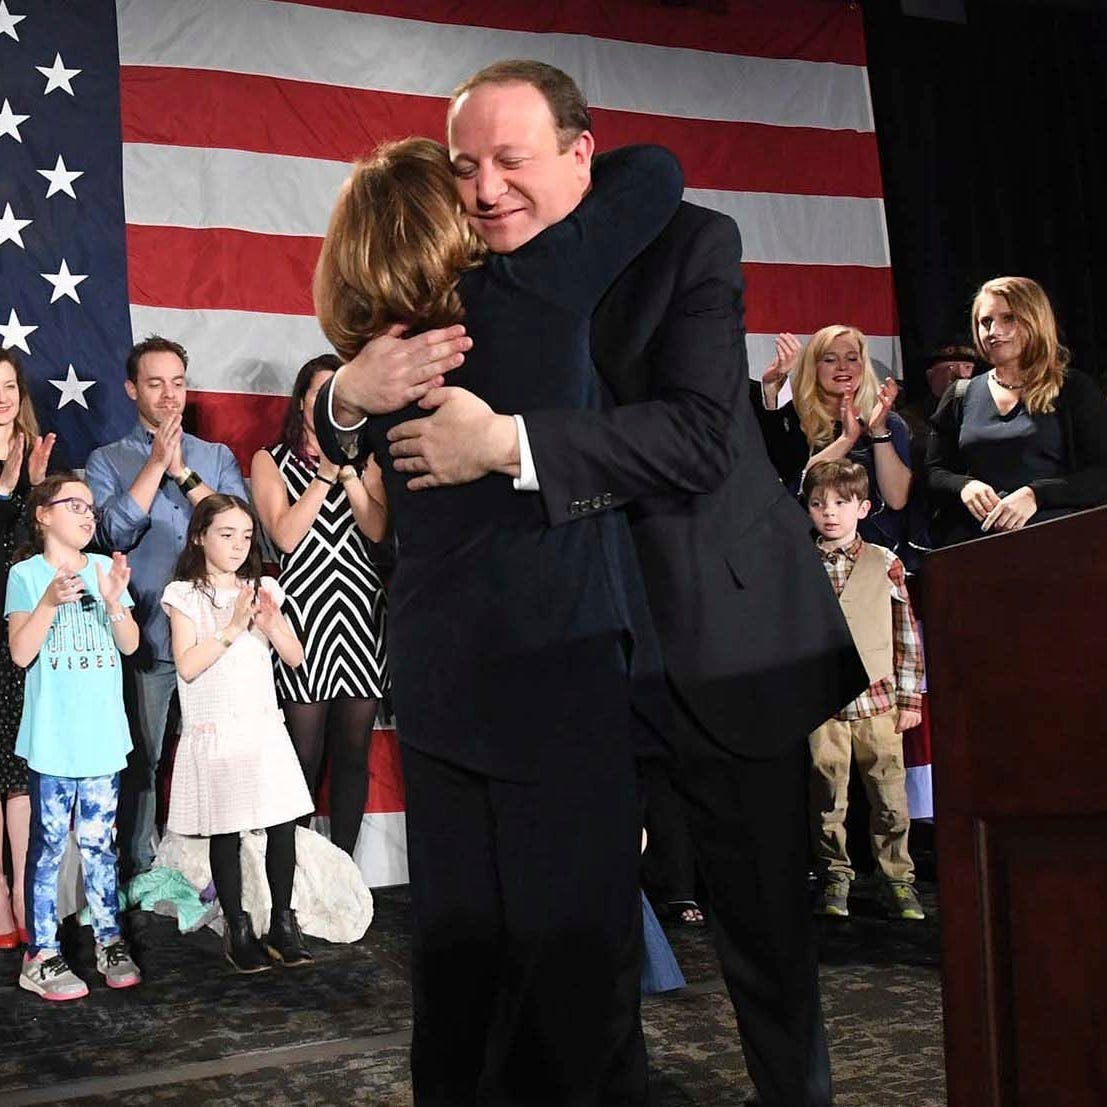 Colorado governor-elect Jared Polis gets shout-out on 'SNL'